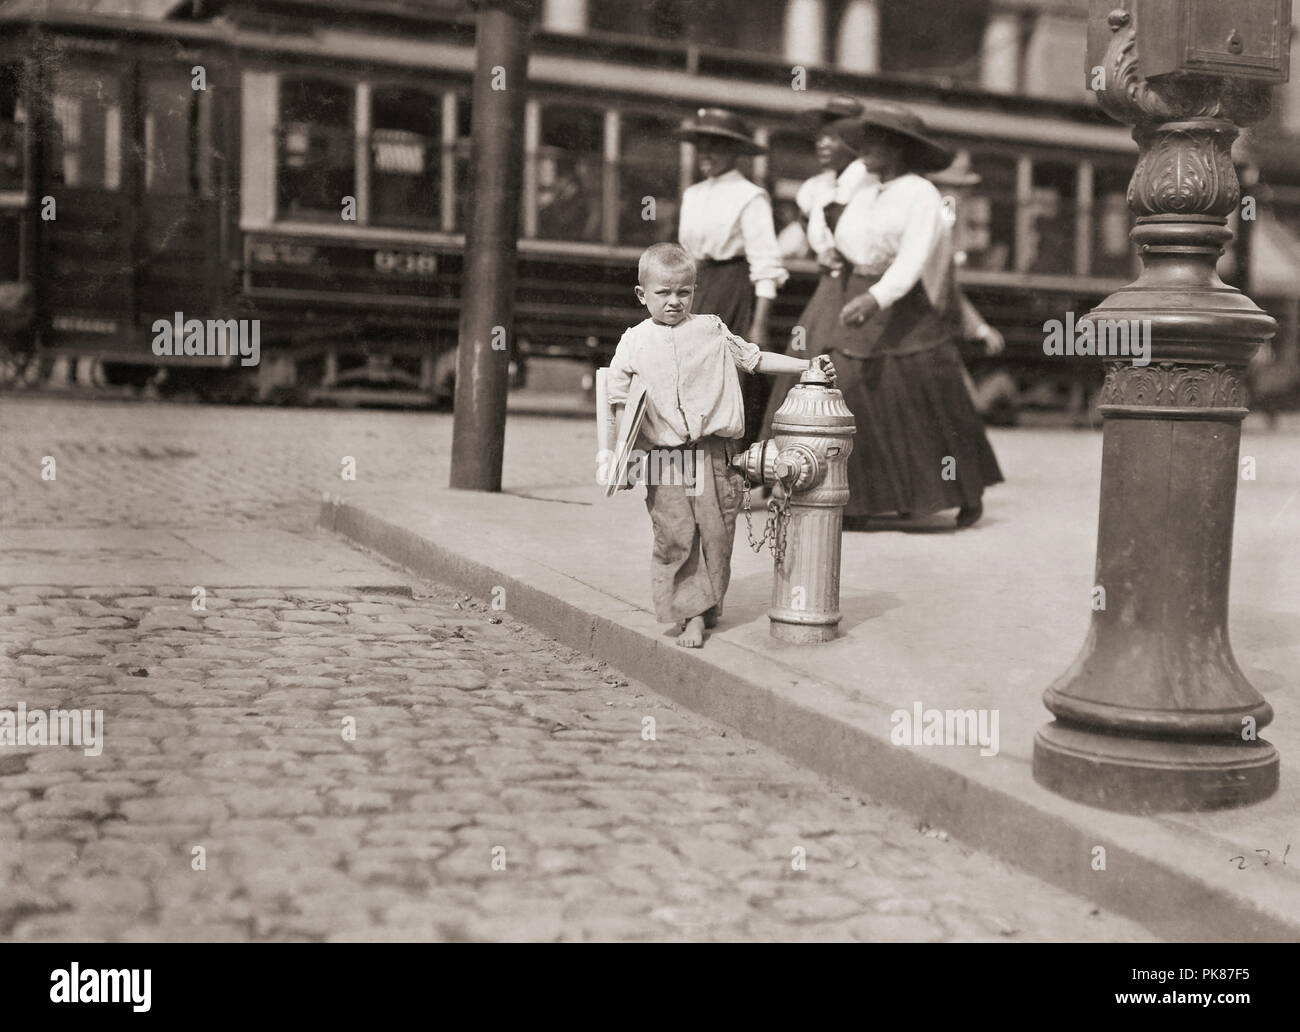 Child newspaper vendor, New York.  Taken 1909.  After a photograph by Lewis Hine, 1874-1940.  Hine was a sociology teacher who used photography to record social problems and spur reform. - Stock Image